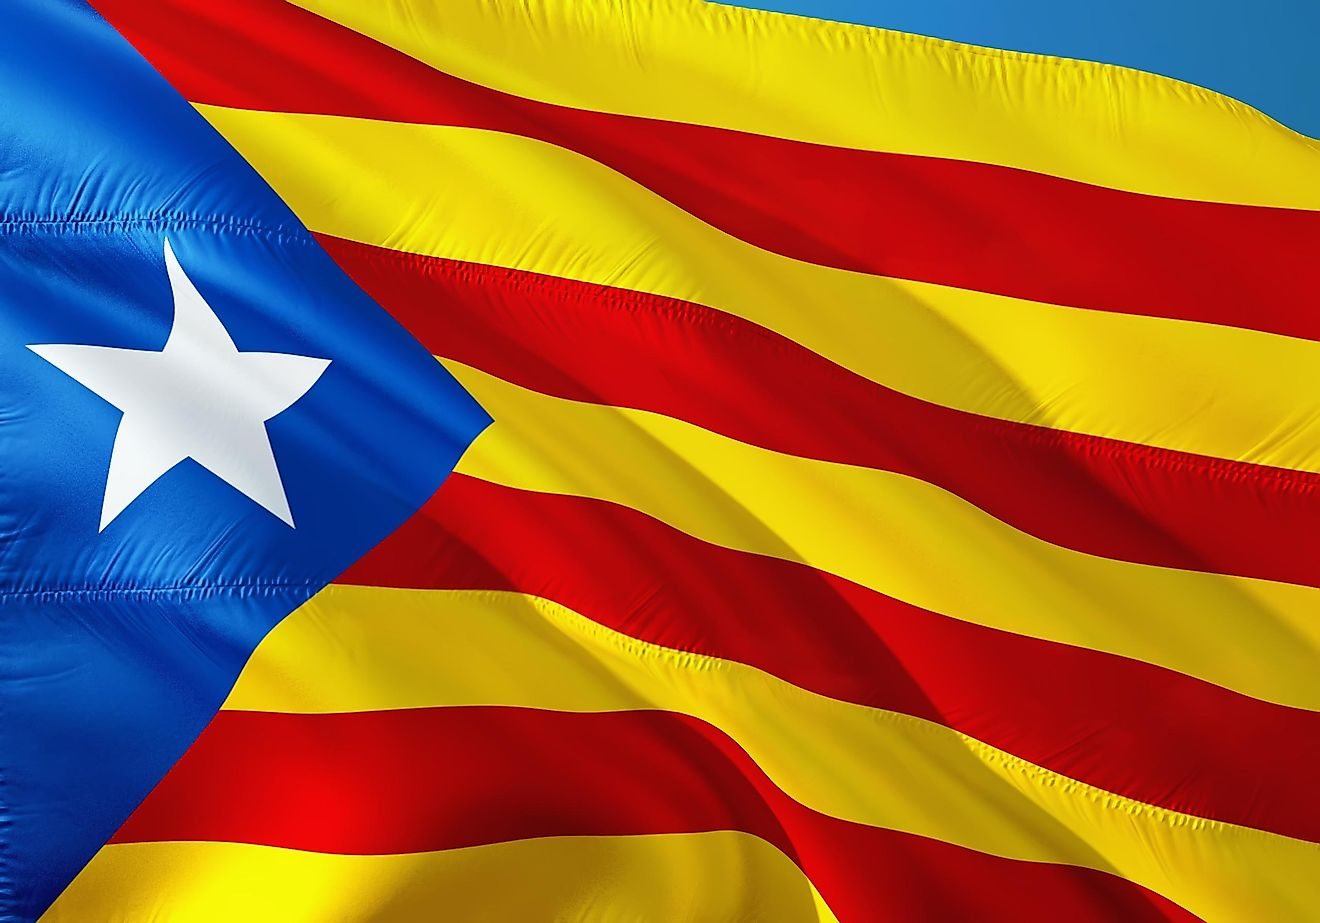 The flag of Catalonia.